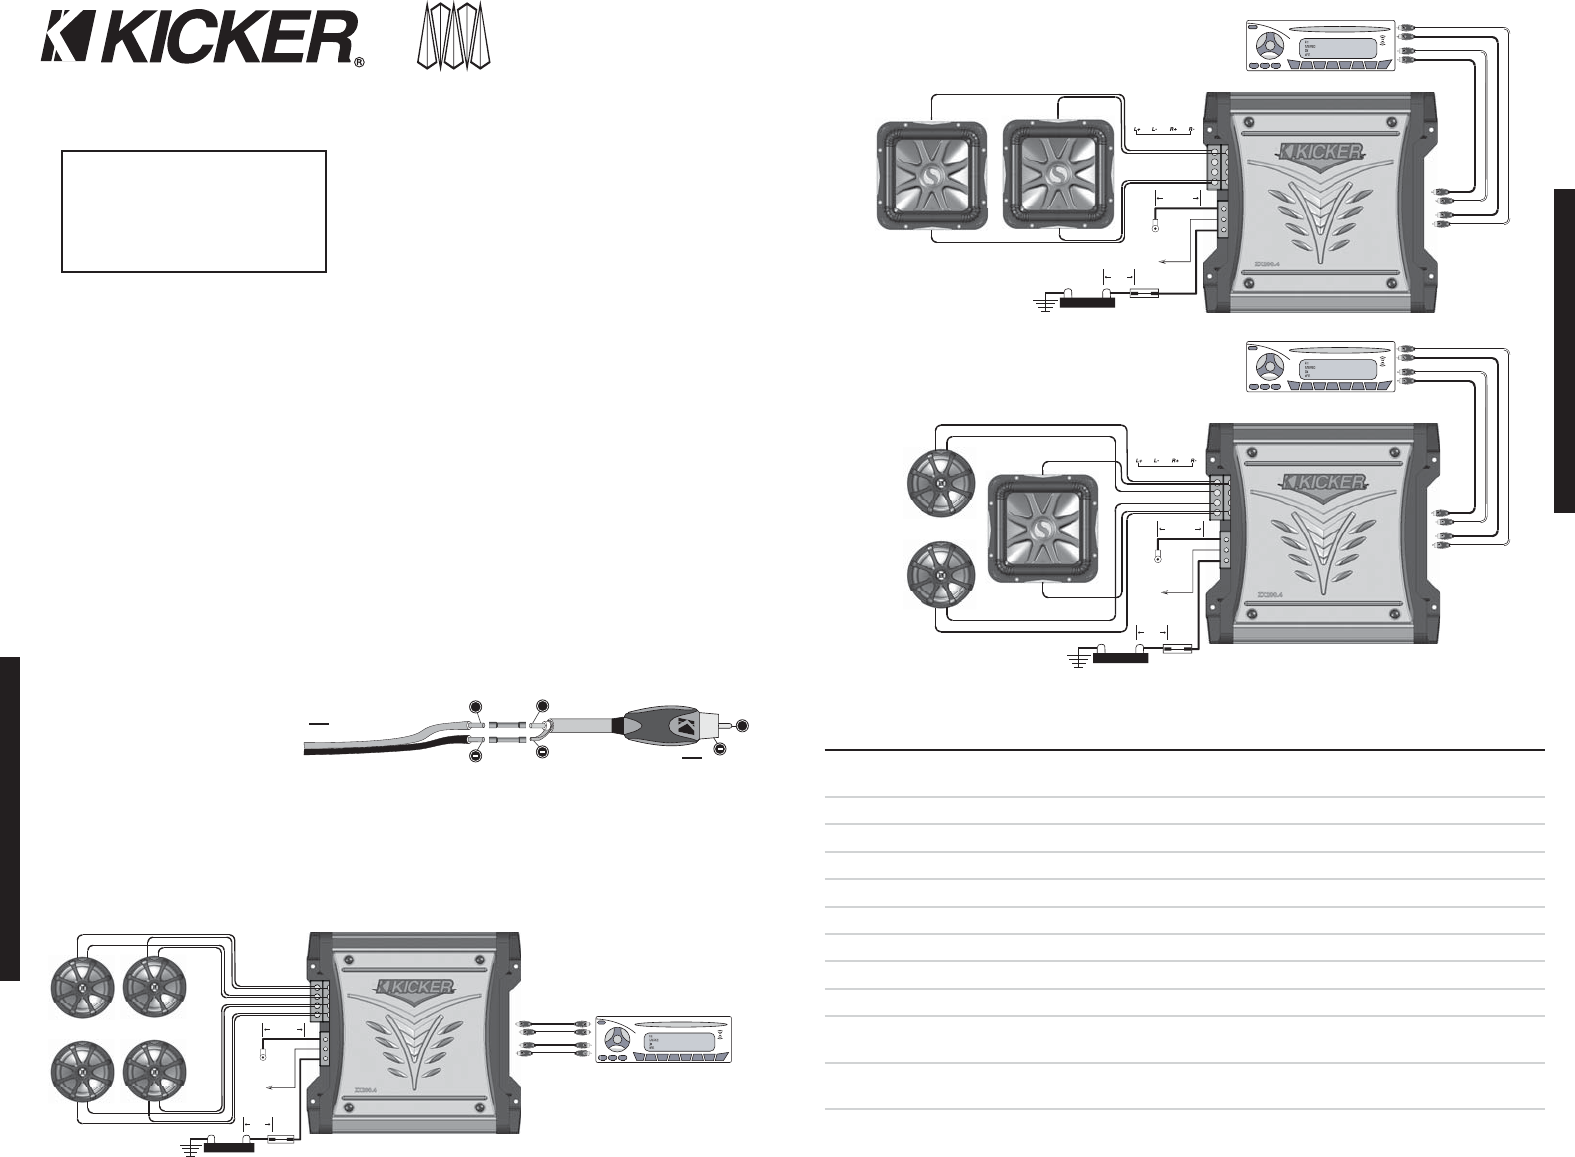 Kicker Solo Baric L7 Wiring Diagram from usermanual.wiki